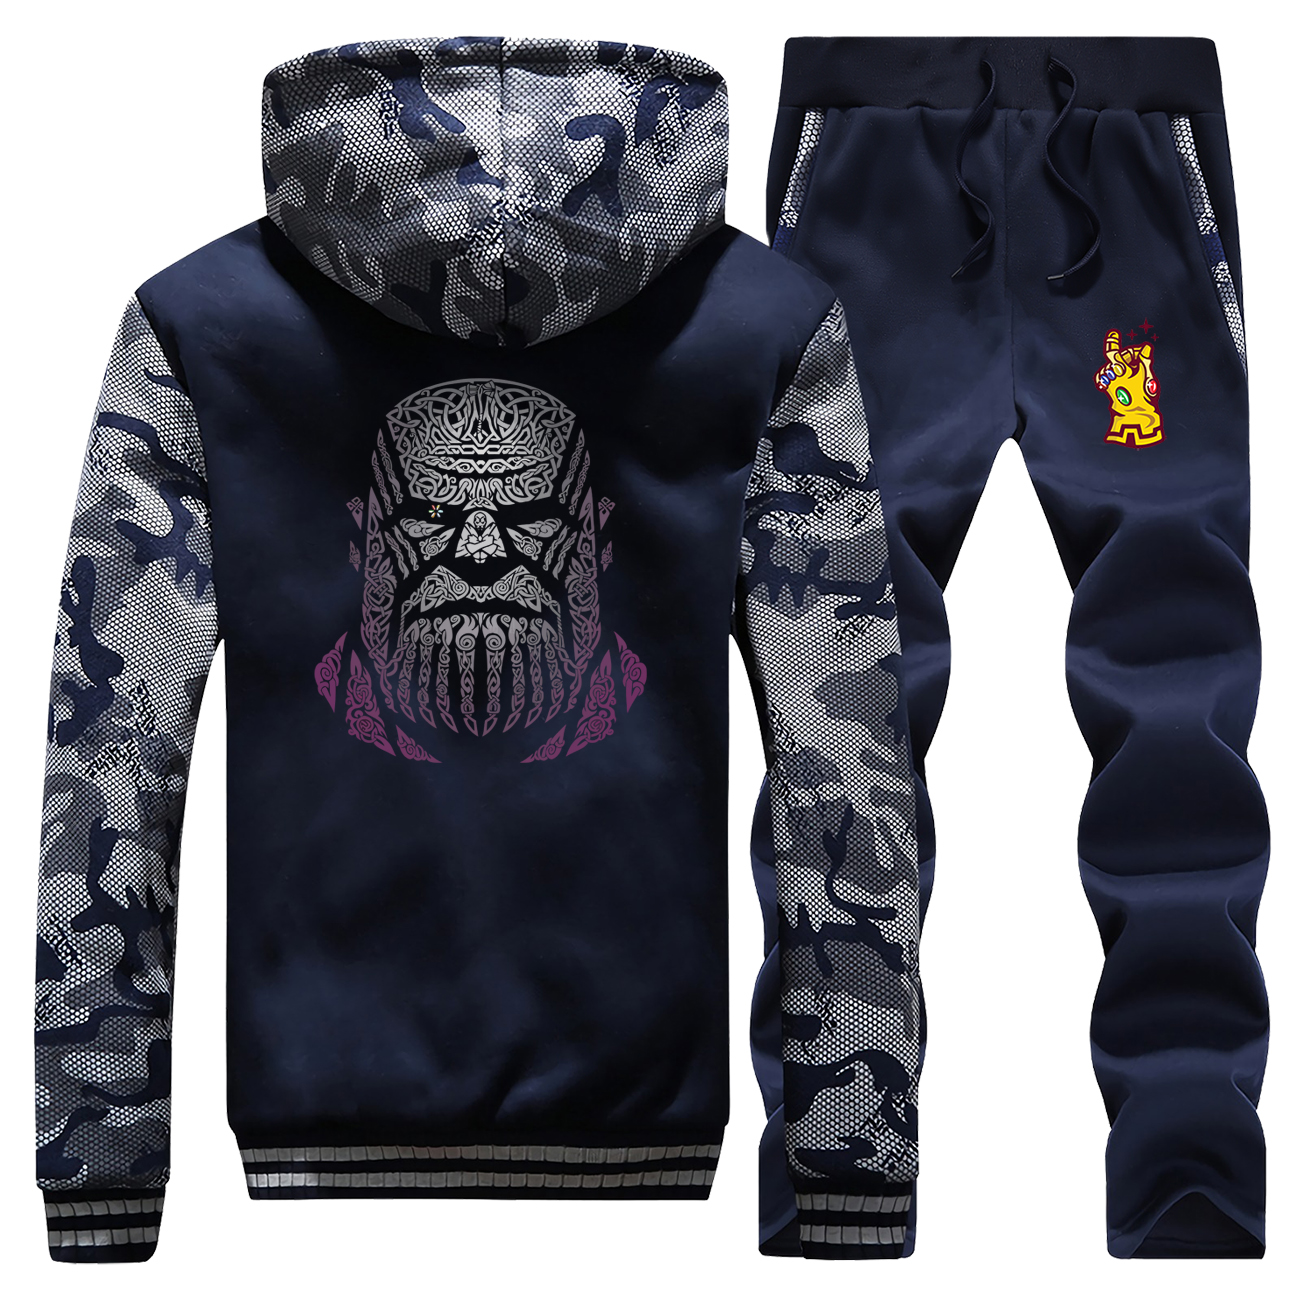 Hot Sale 2019 Winter Infinity Gauntlet Thanos The Avengers Mens Camouflage Anime Sportswear Hoodies Coat Thick+2 Piece Set Pants